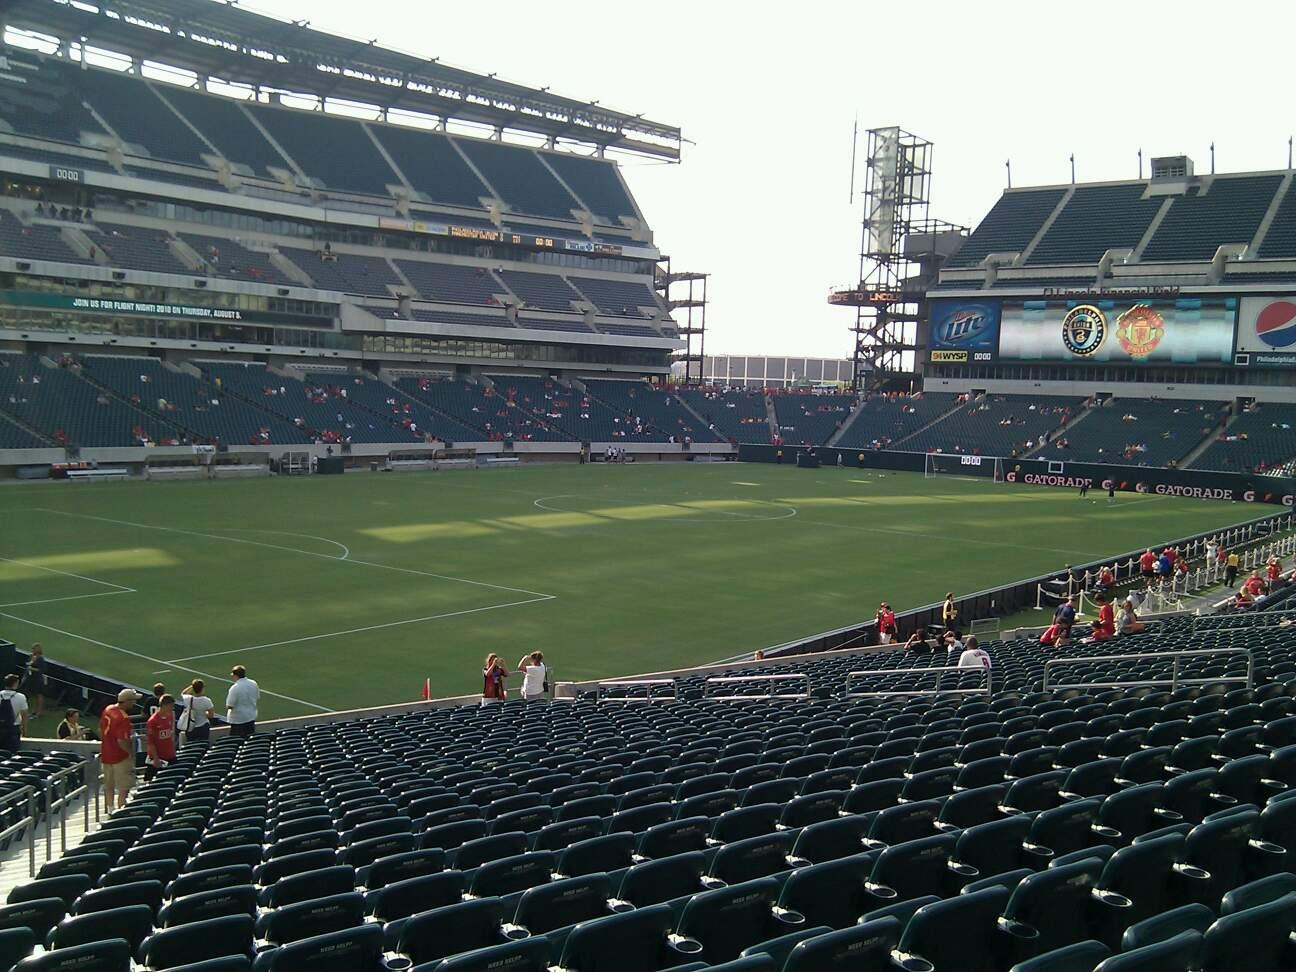 Lincoln Financial Field Section 115 Row 27 Seat 25